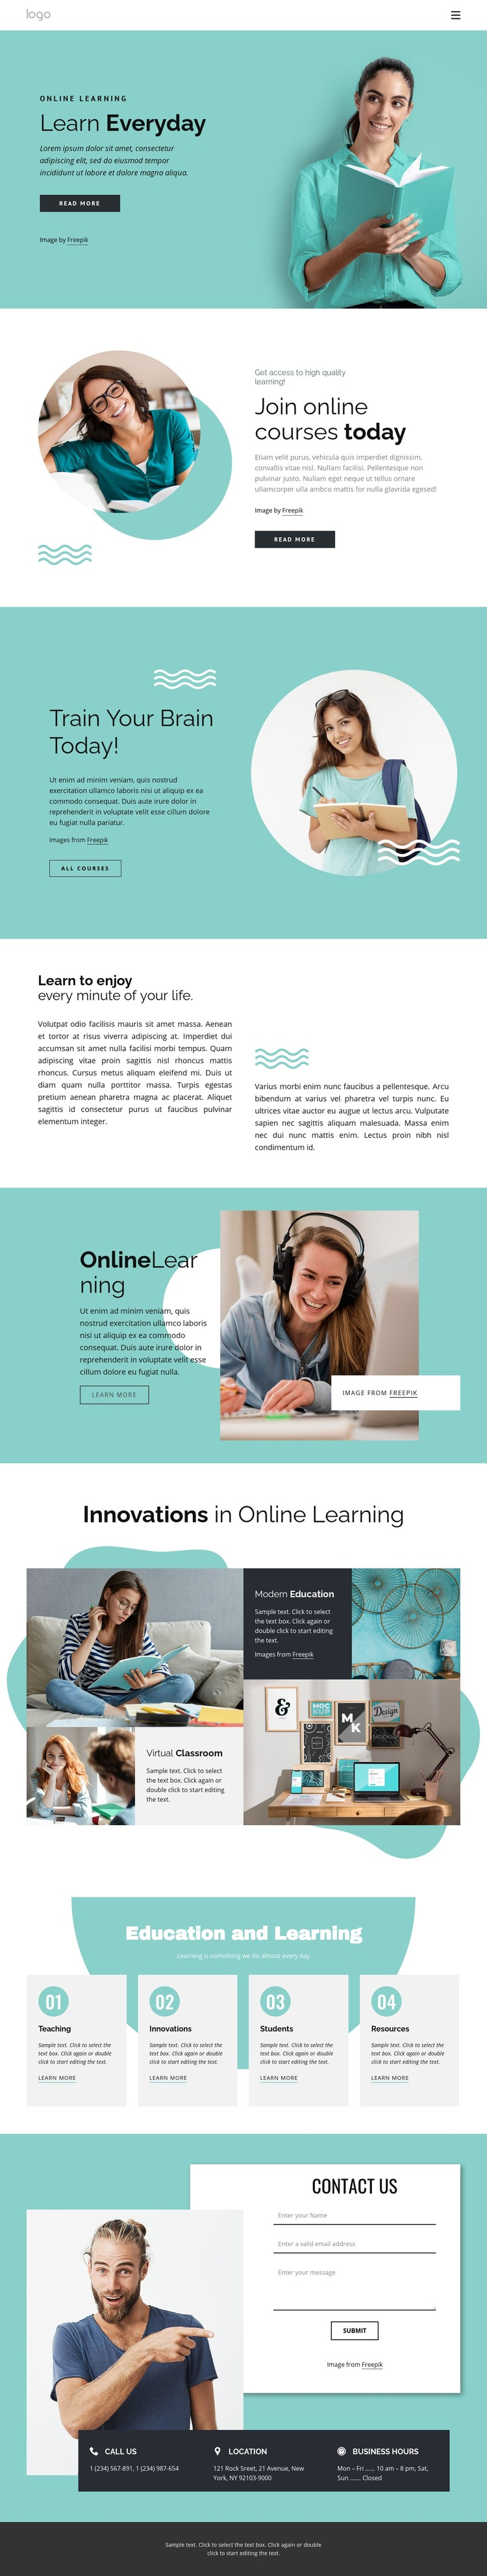 Learning is a lifelong process Html Code Example